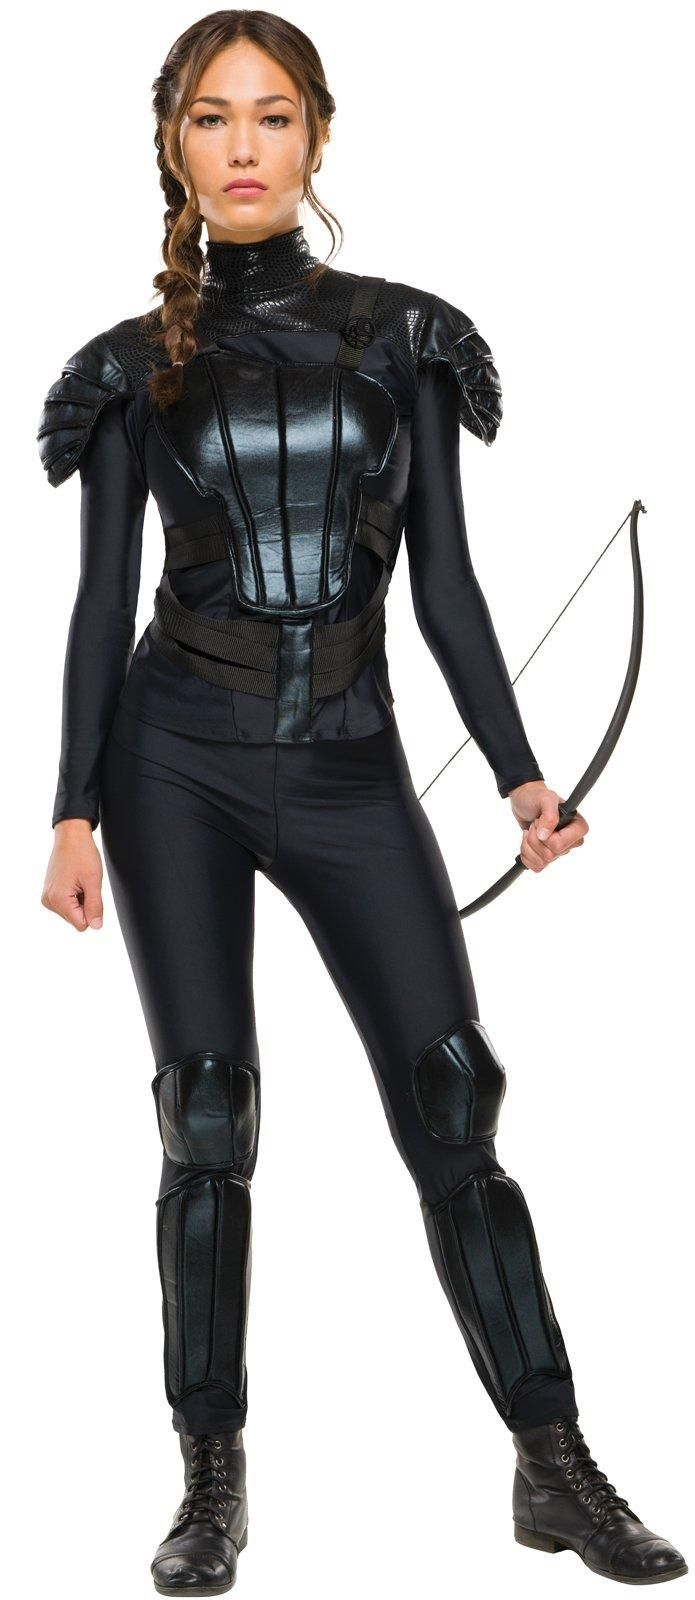 The Hunger Games: Mockingjay Part 1 Deluxe Womens Katniss Costume from Buycostumes.com